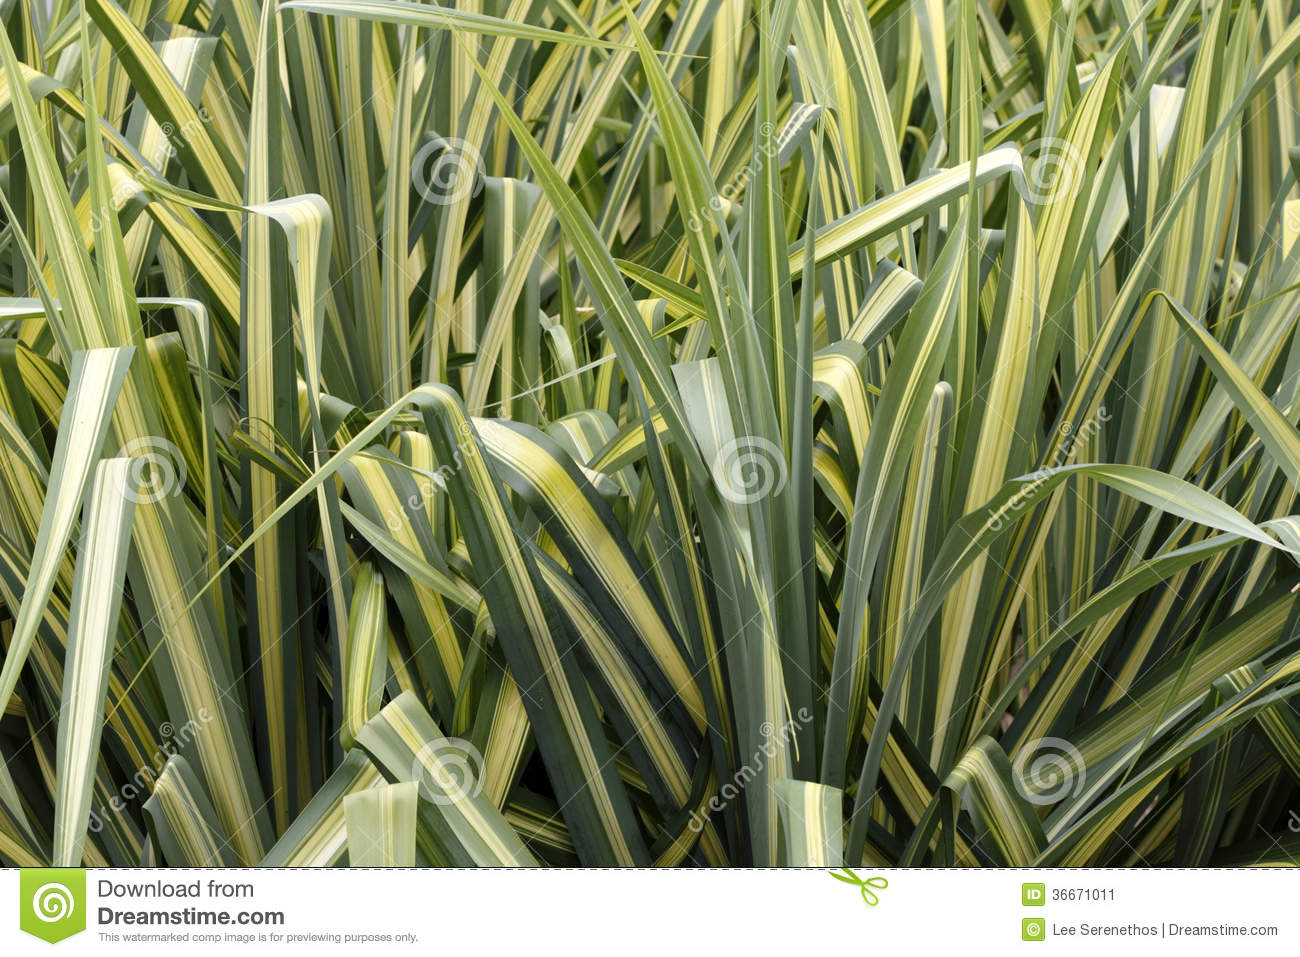 Closeup background of tall, evergreen ornamental sedge grass showing ...